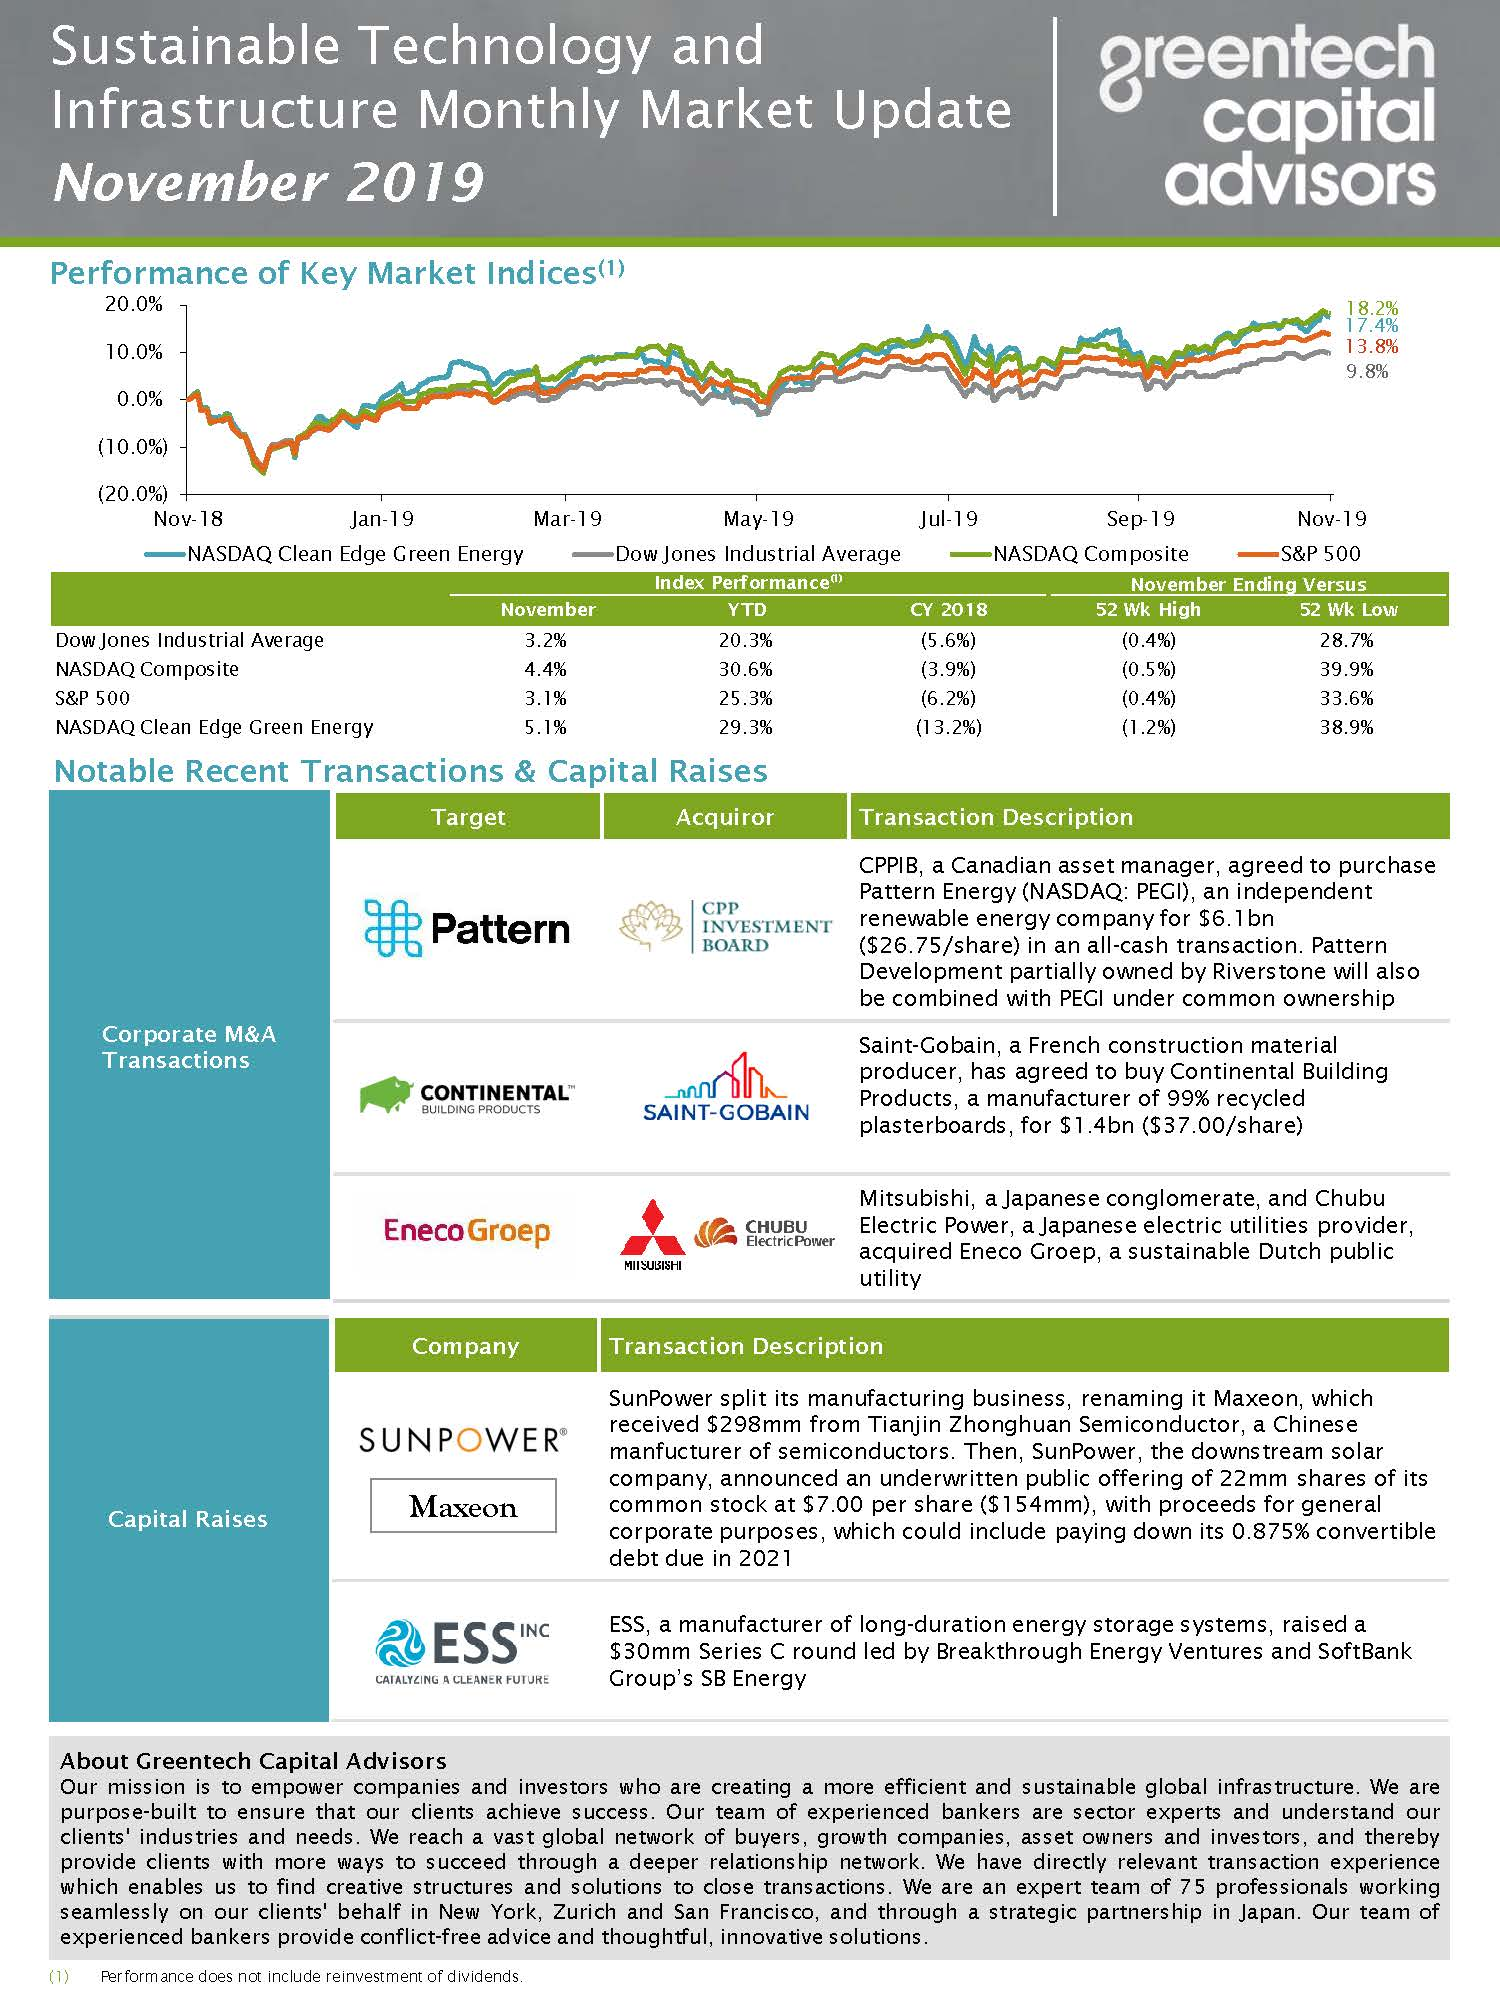 Sustainable Investing Monthly Market Update - November 2019